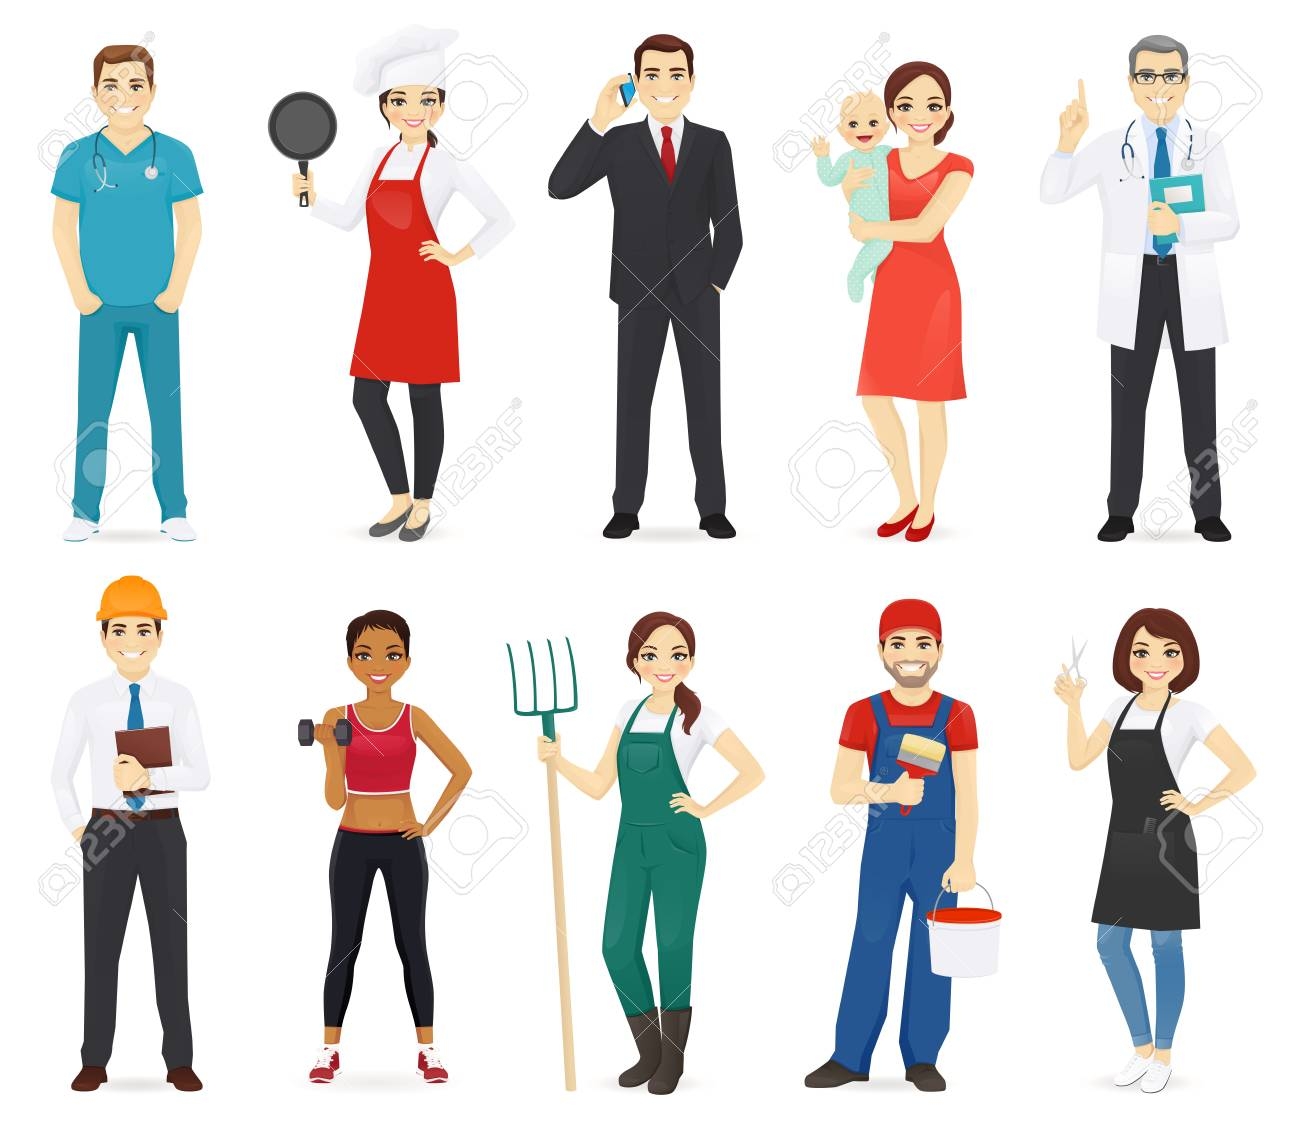 People different profession collection set isolated vector illustration - 126739383